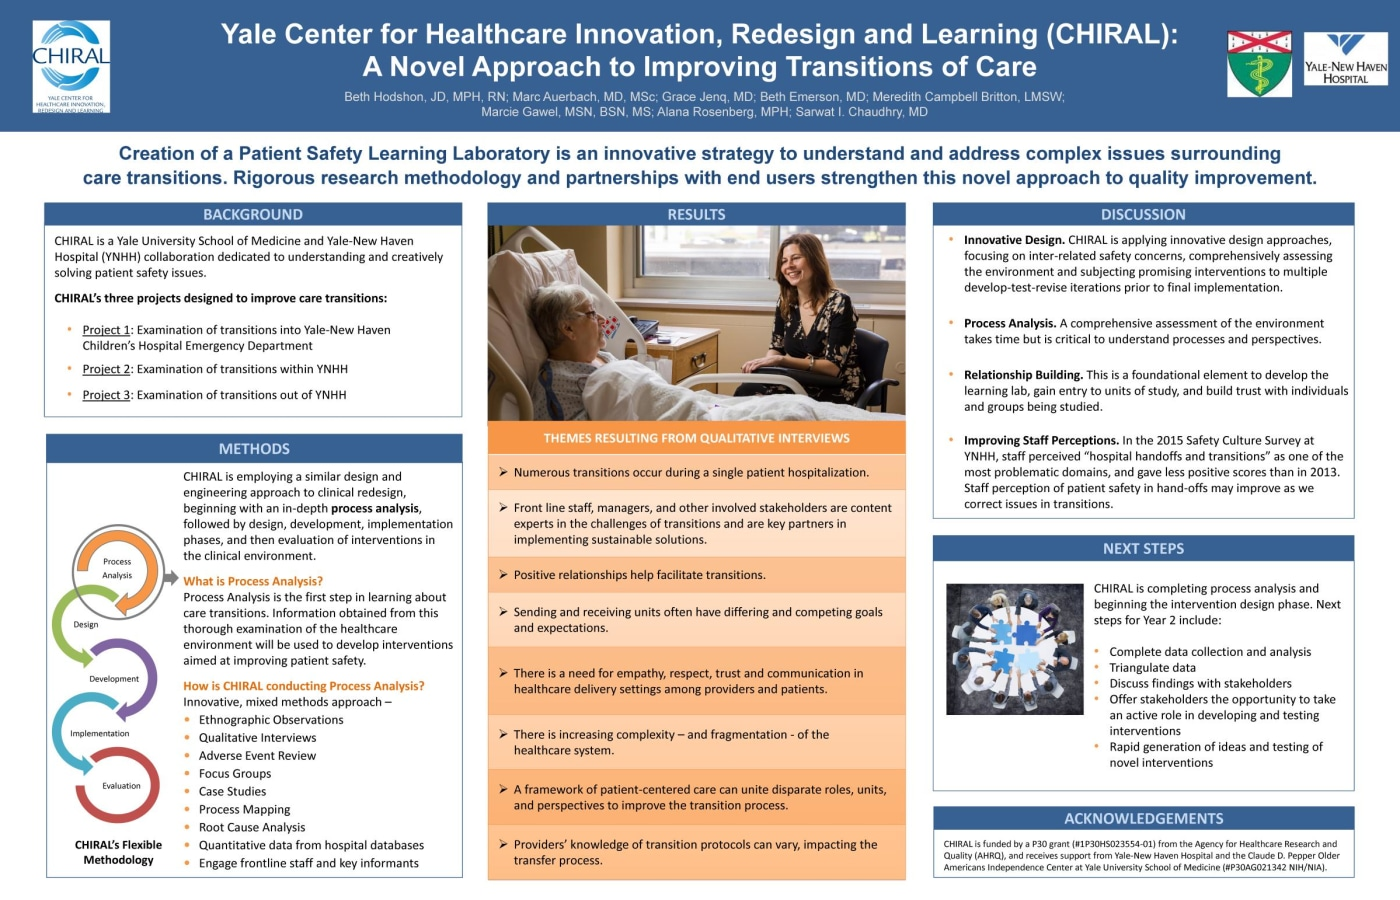 Yale Center for Healthcare Innovation, Redesign and Learning (CHIRAL): A Novel Approach to Improving Transitions of Care